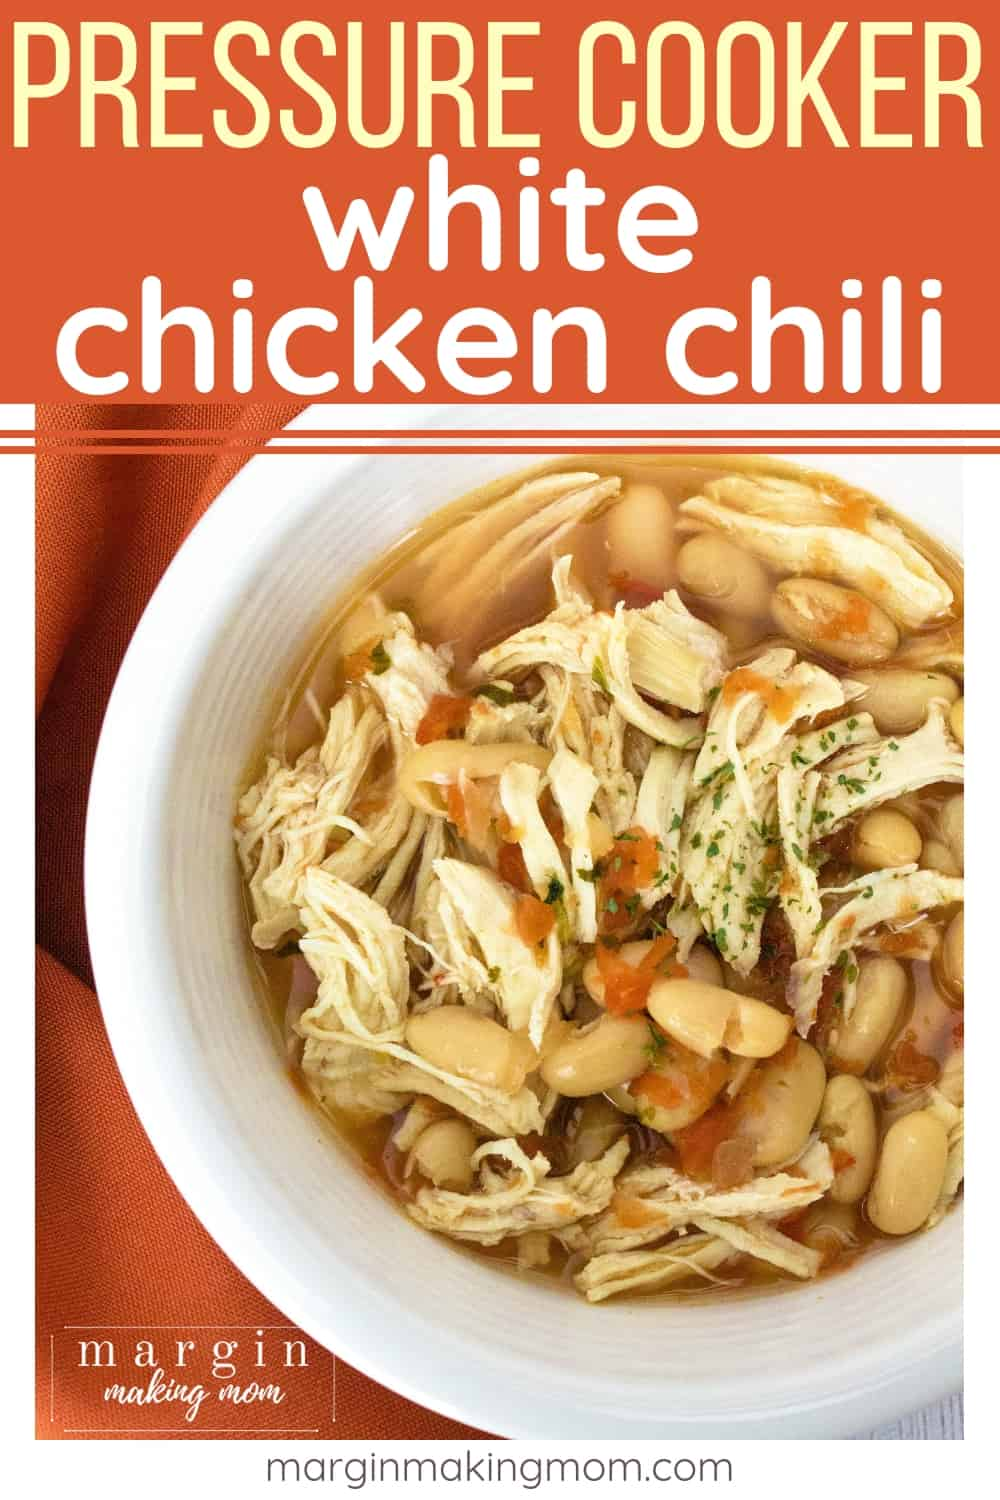 white bowl filled with pressure cooker white chicken chili made in the Instant Pot